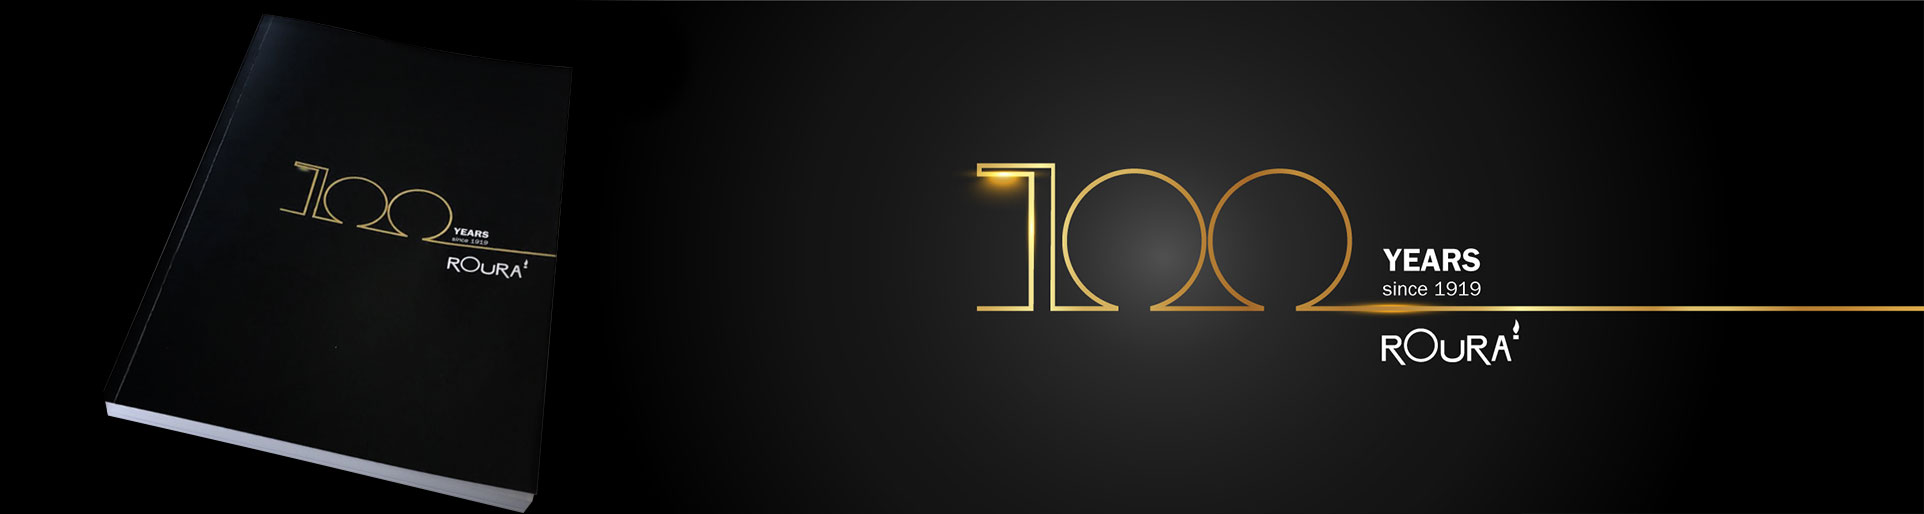 1924x514px-100years